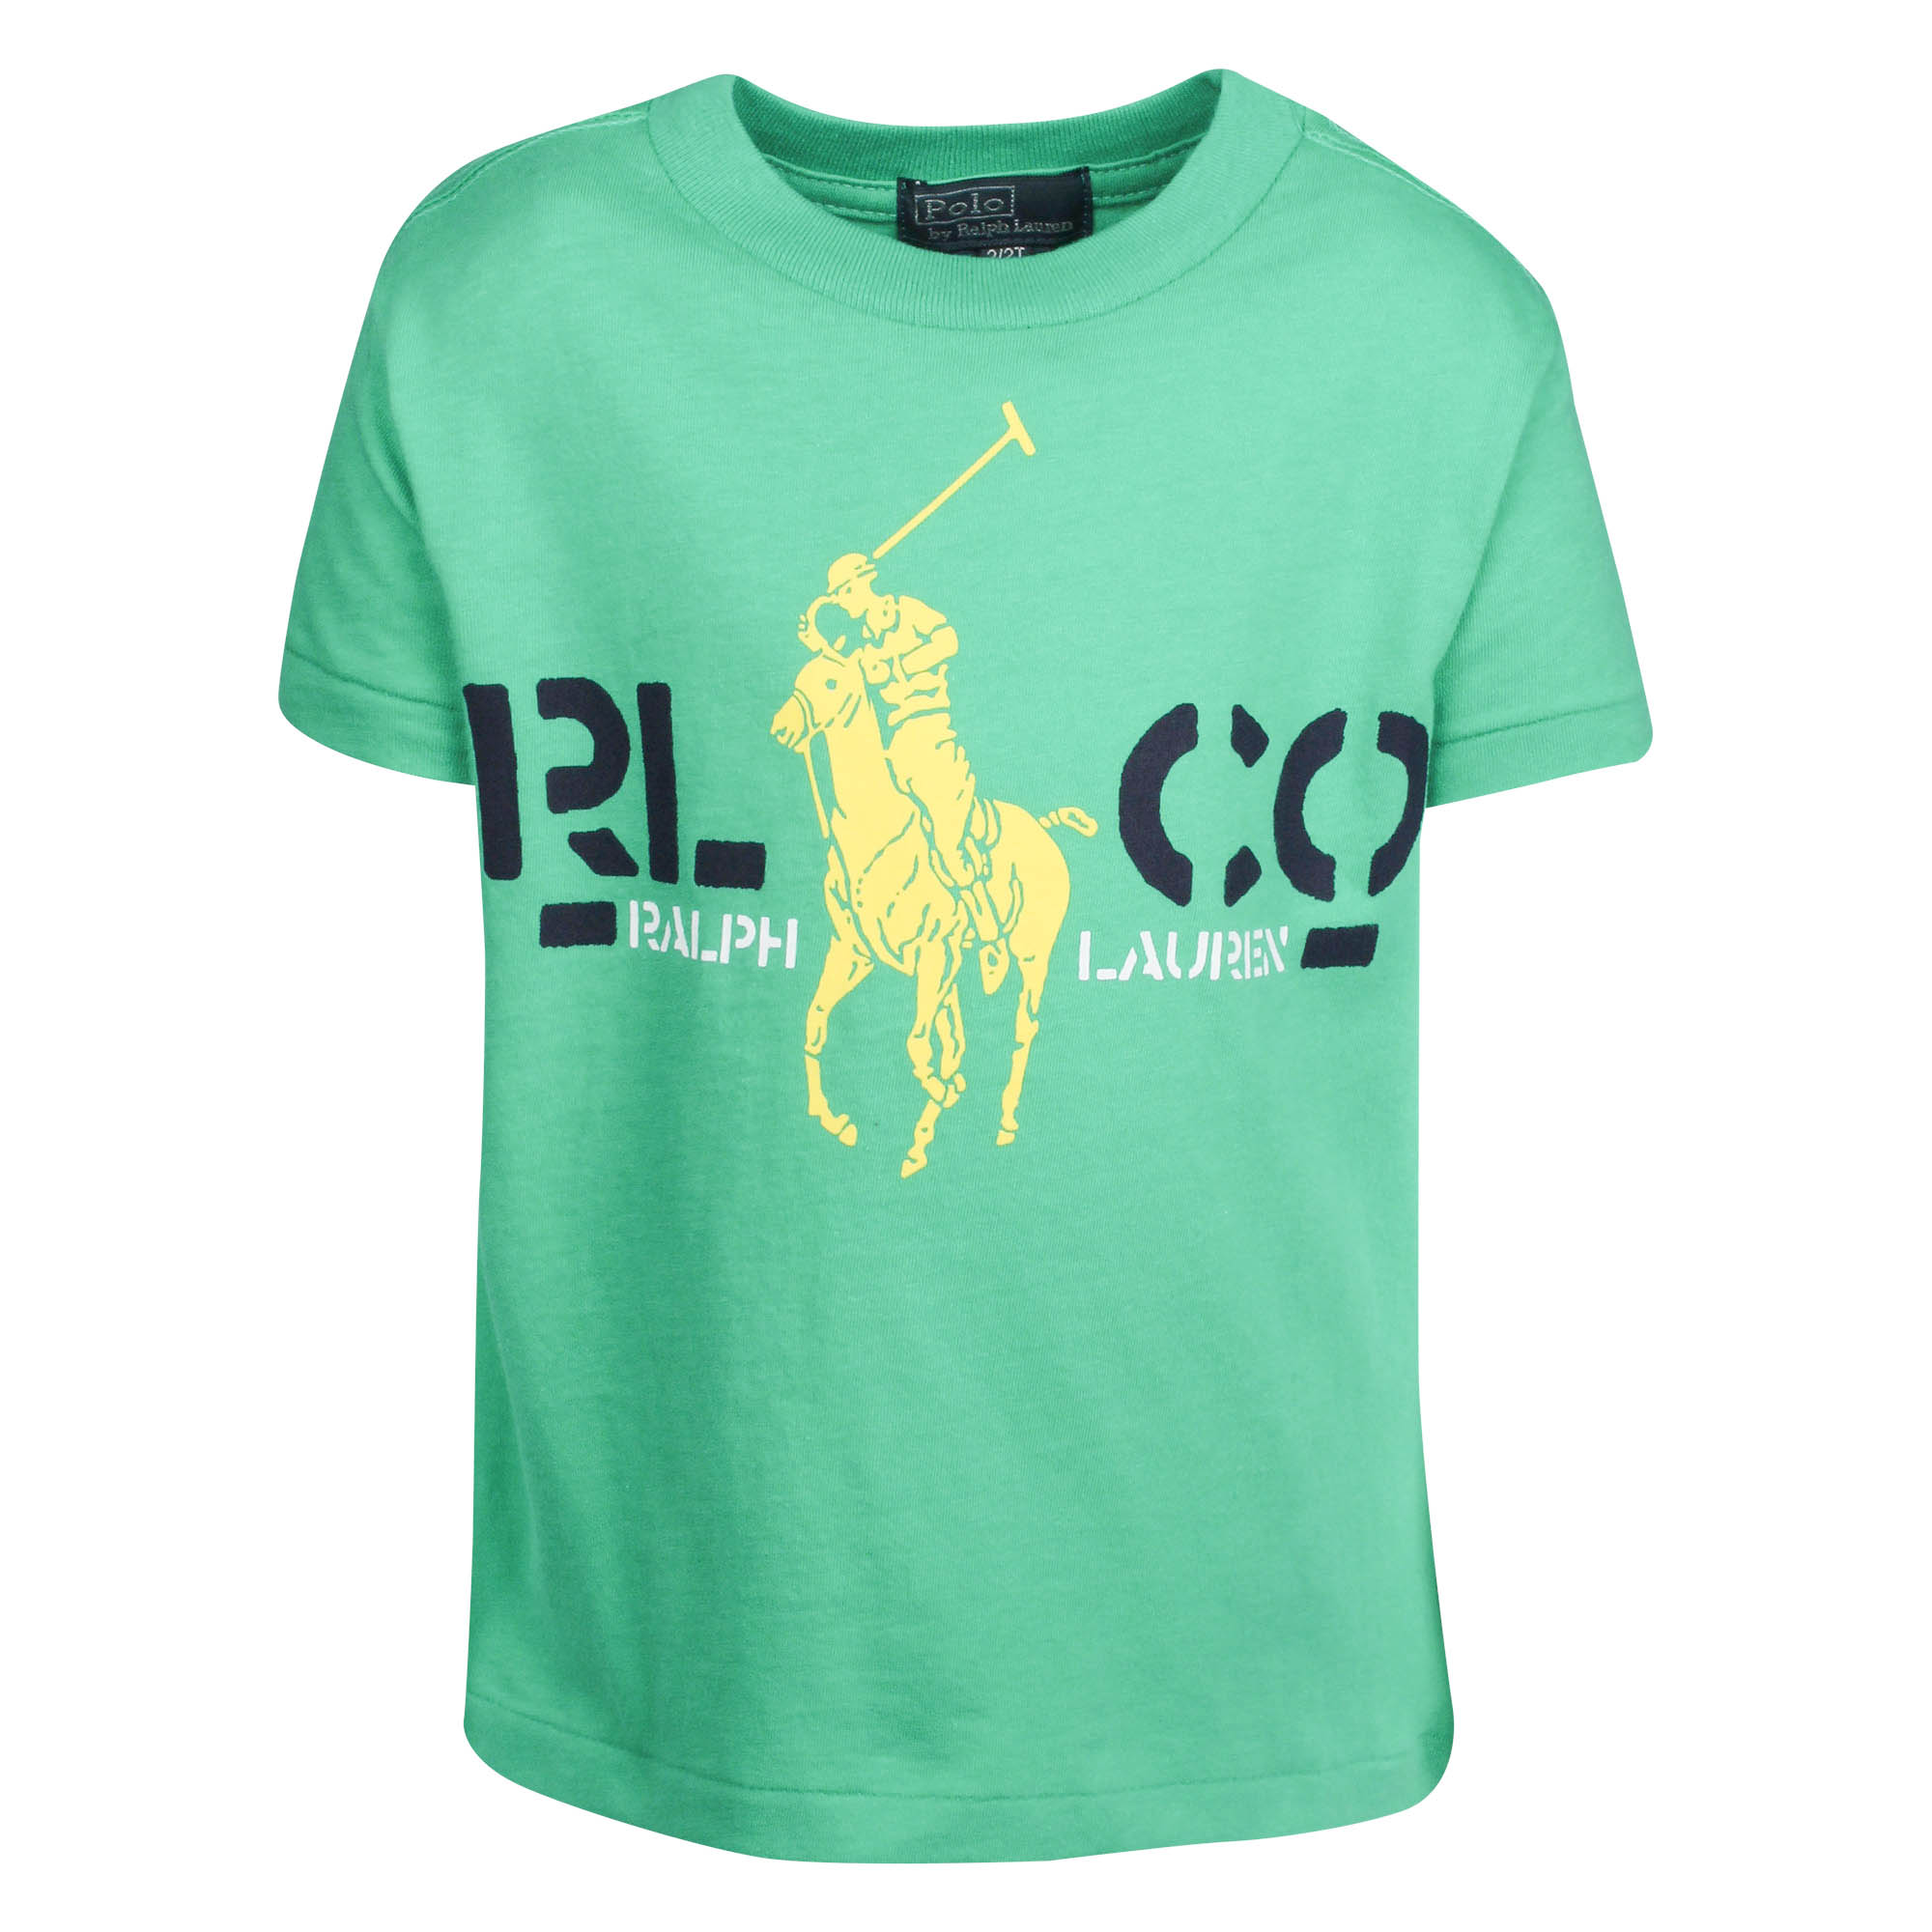 SS CN Big PP Graphic Tee Clover - 2